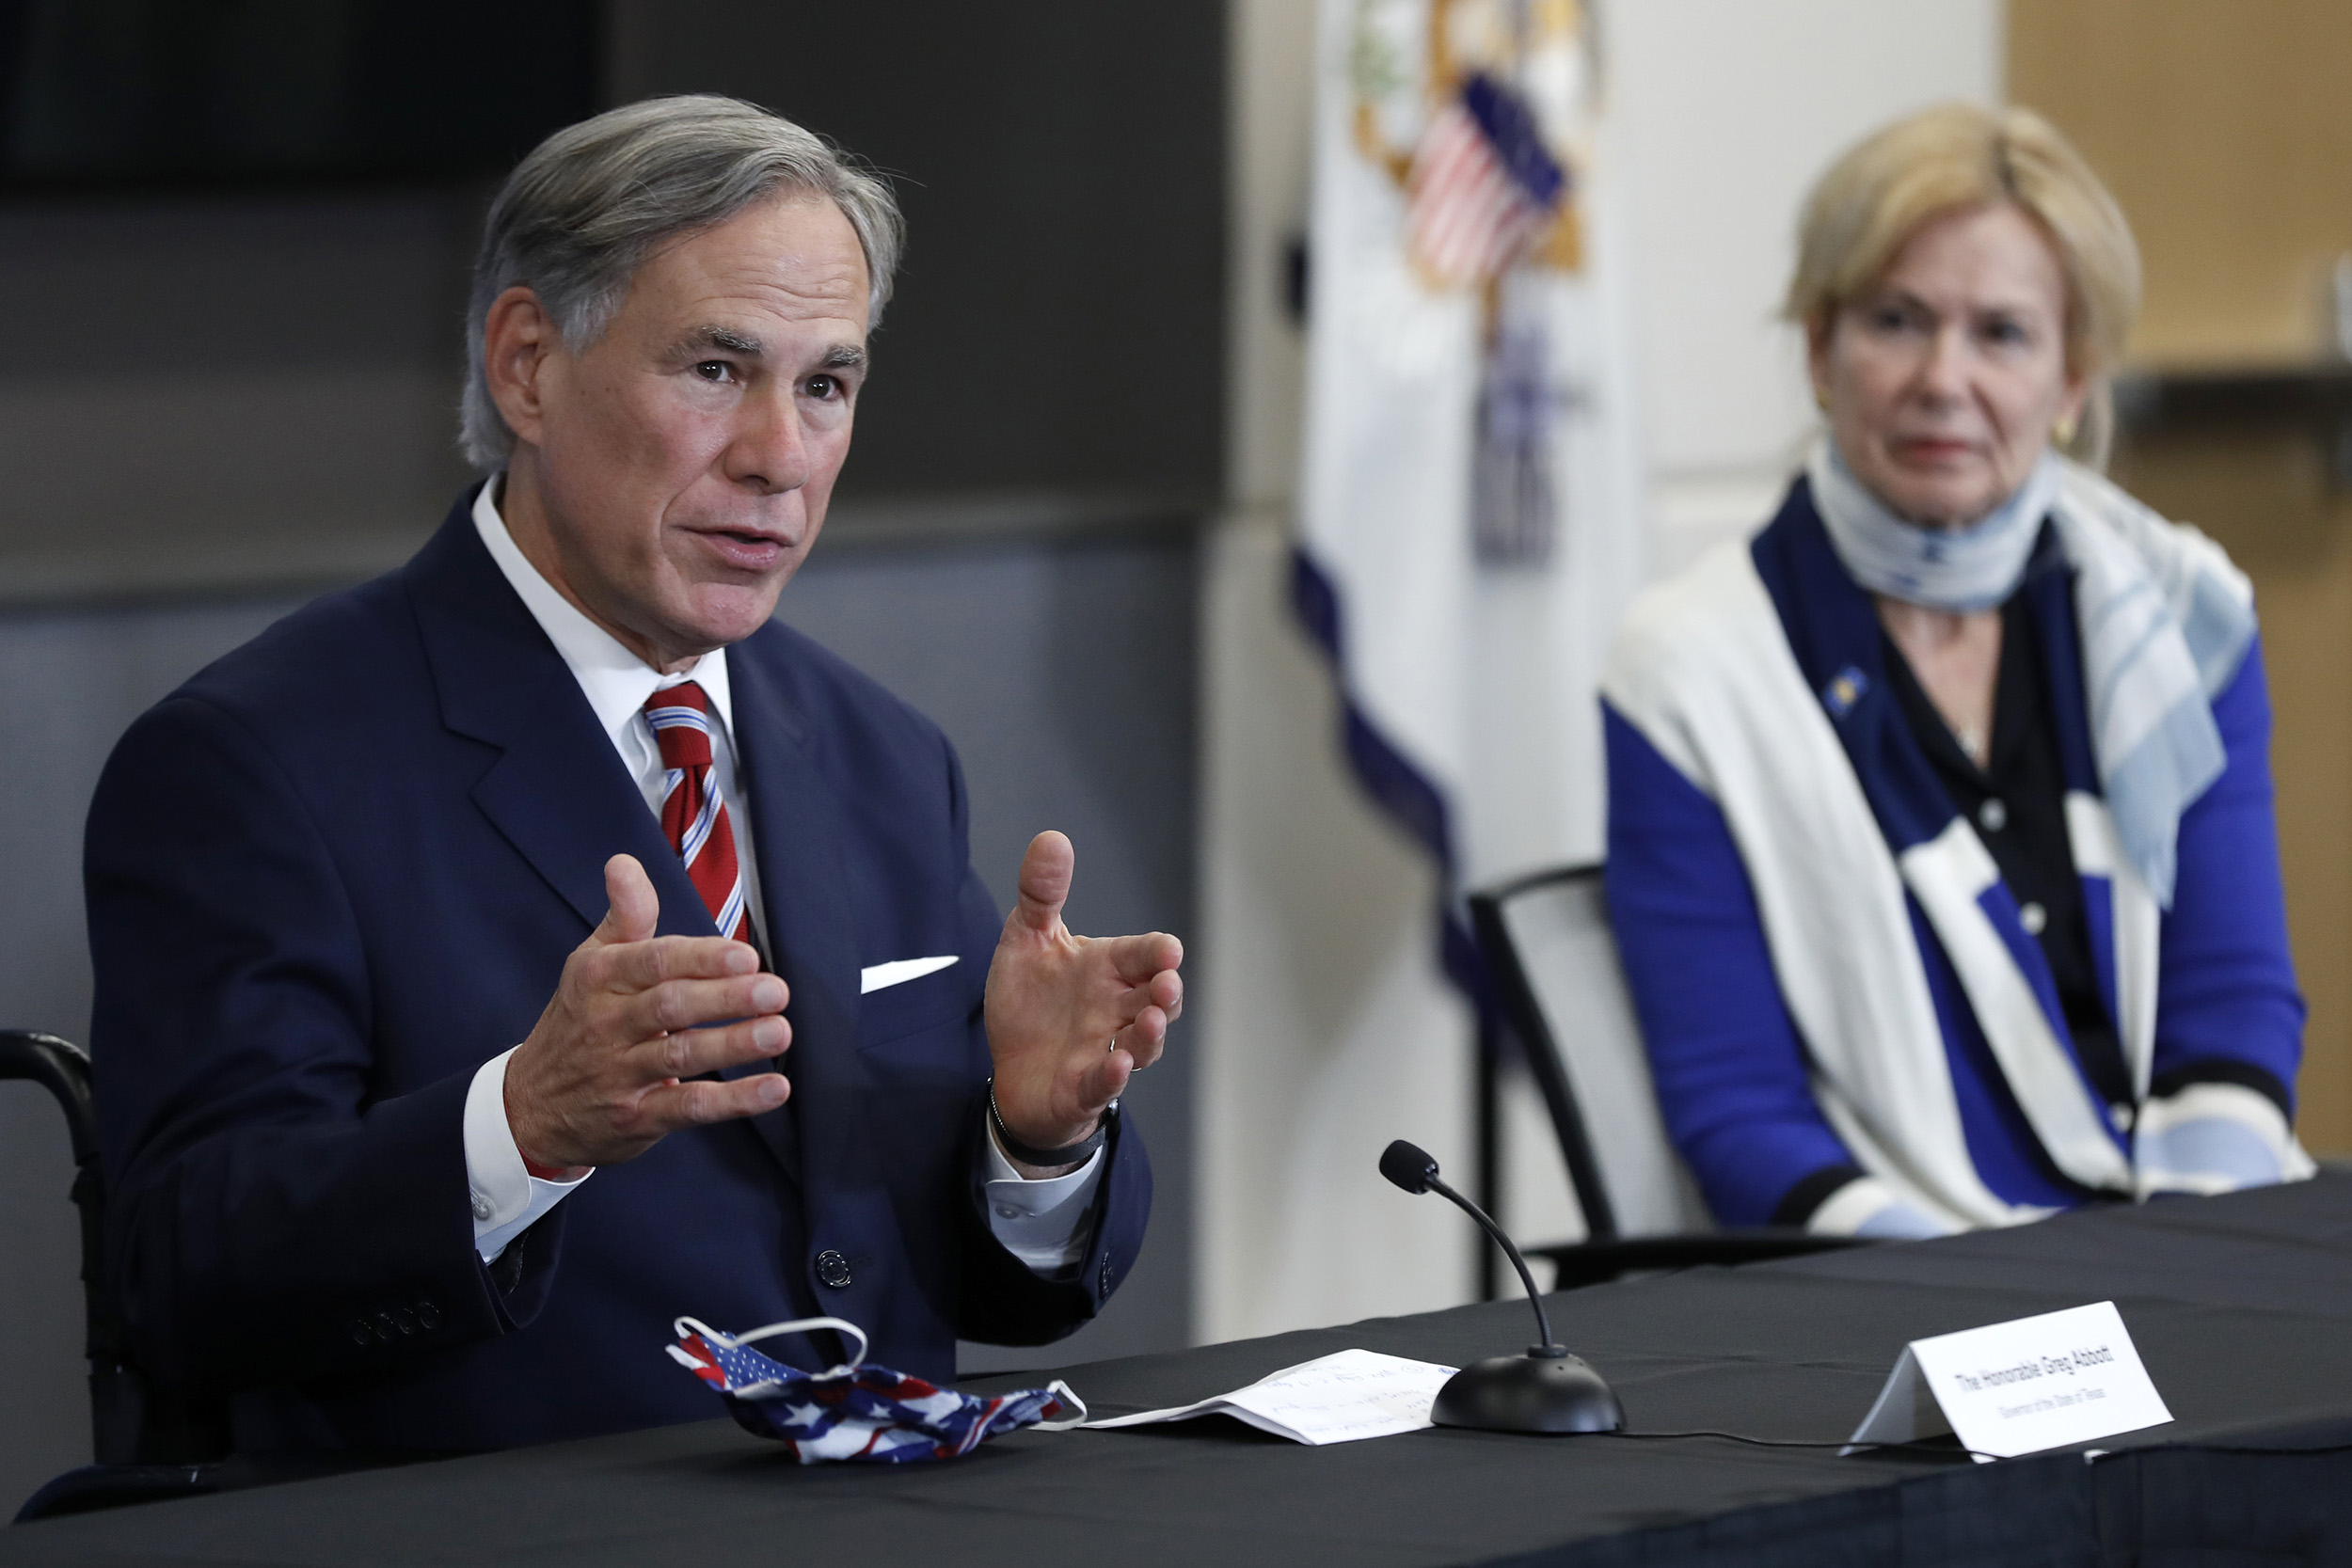 Texas Gov. Greg Abbott and Dr. Deborah Birx, White House coronavirus response coordinator, at the University of Texas Southwestern Medical Center in Dallas, Texas, on June 28.